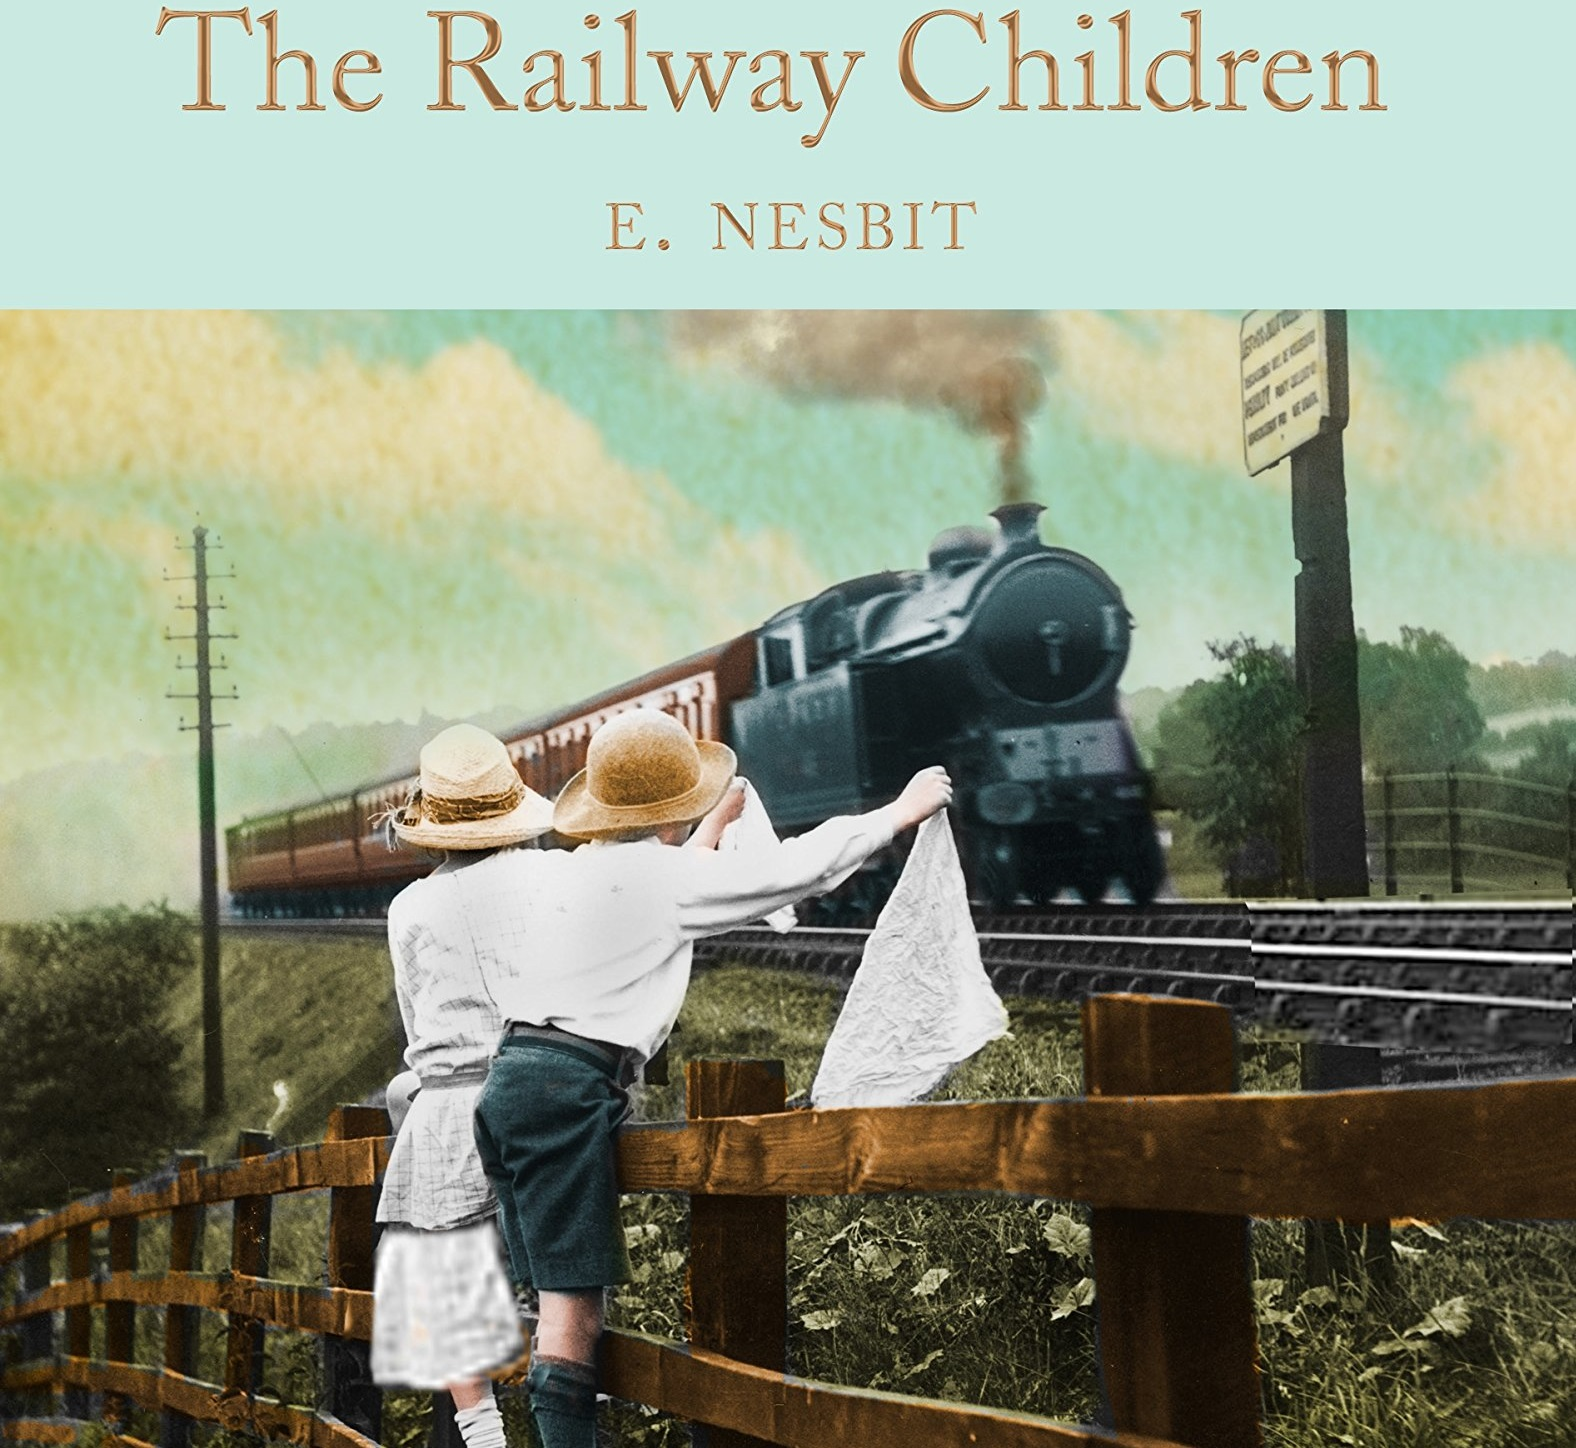 The Cover of the Book, The Railway Children